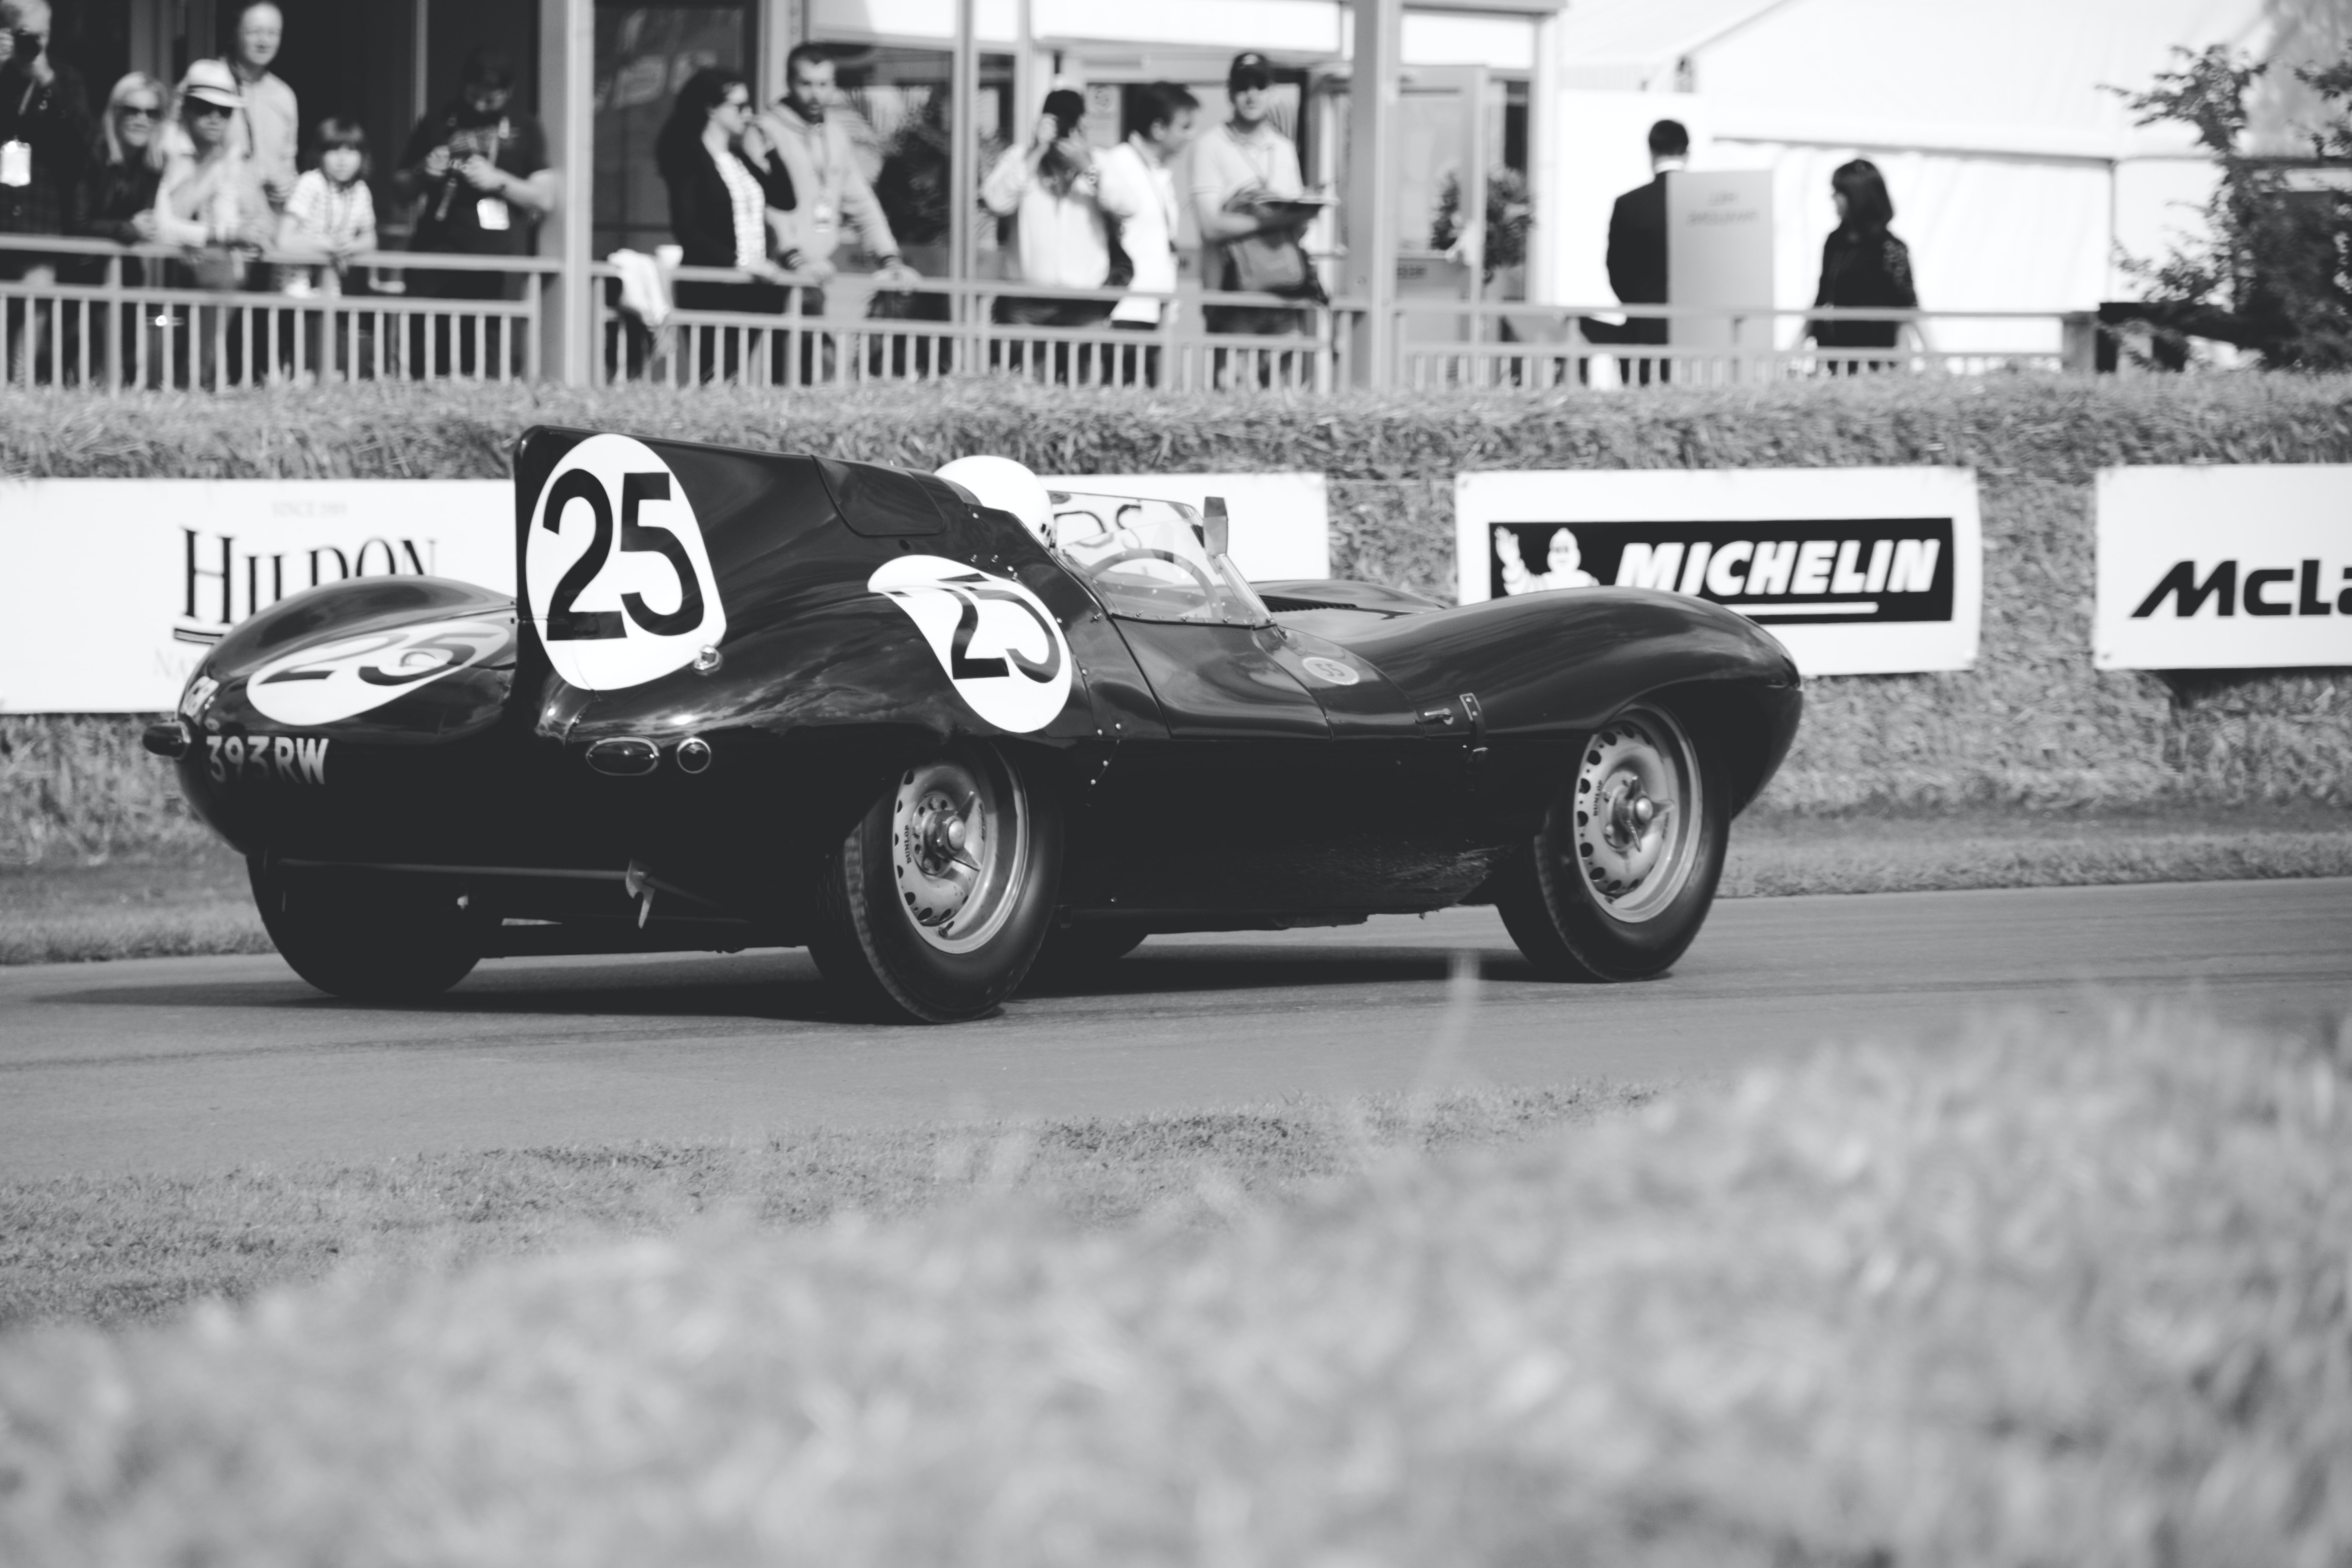 The Vintage Motorsport Festival makes its annual visit to Oulton Park this May for another special day of motor racing antiquity.